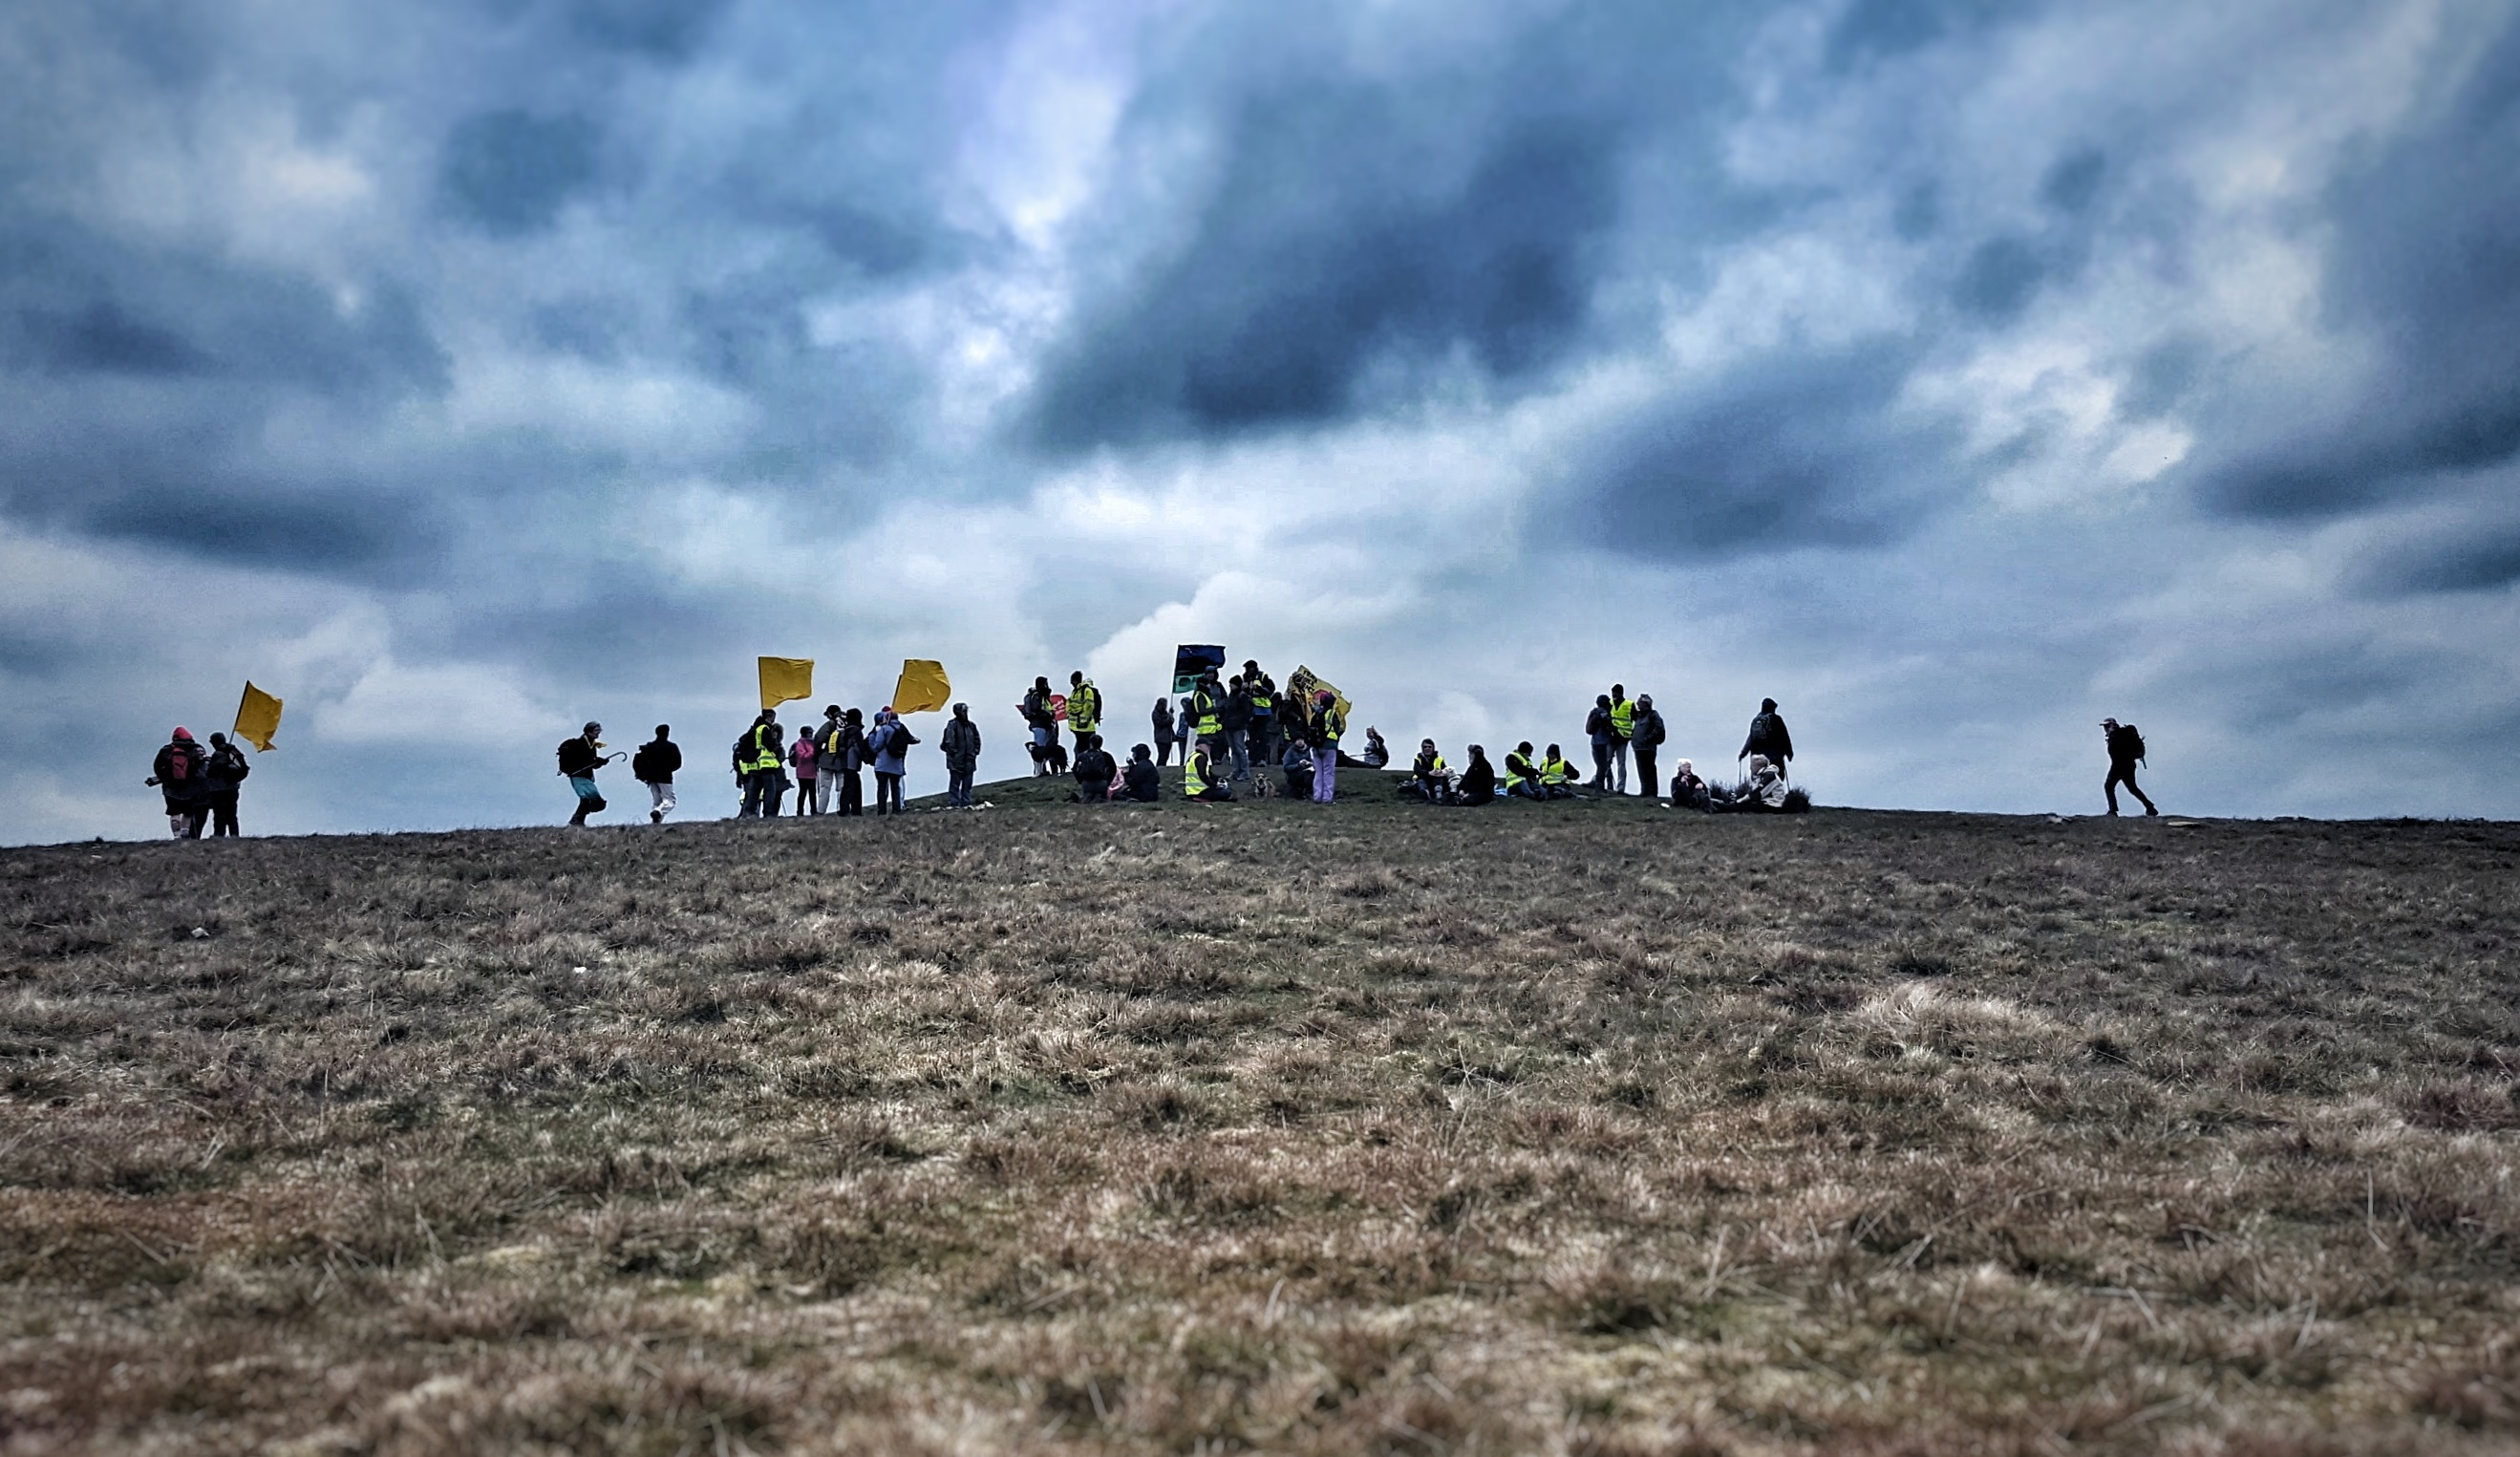 crest of a hill with a dramatic skyline and people gathering at the top